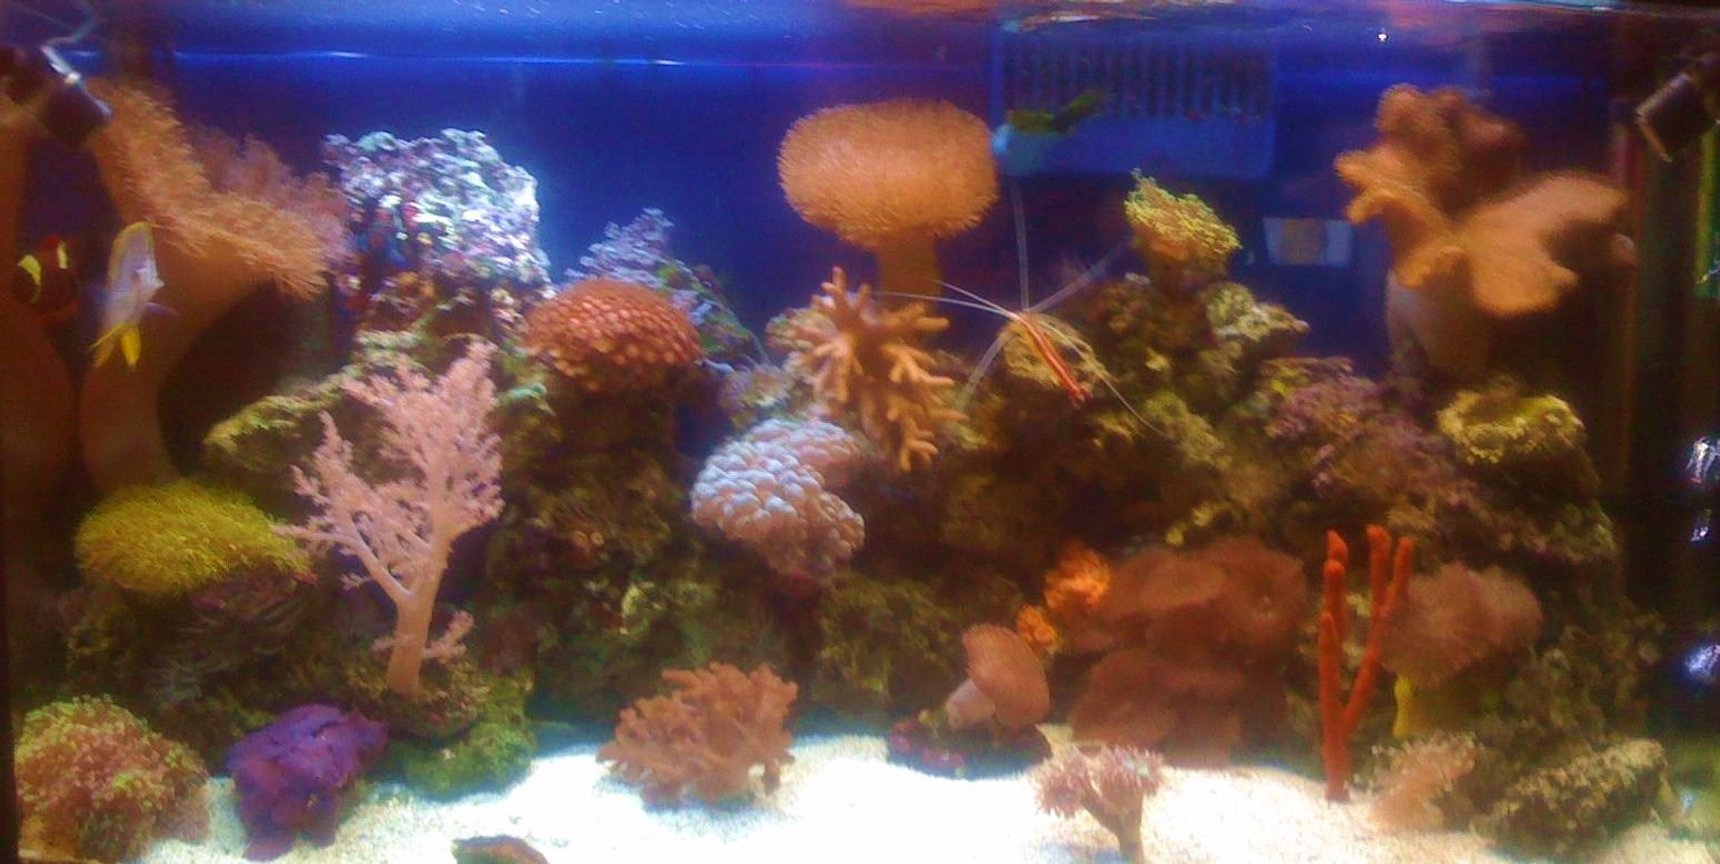 corals inverts - sarcophyton sp. - toadstool mushroom leather coral stocking in 45 gallons tank - 45 Gallon Reef Tank, took the picture with my phone so sorry for the quality